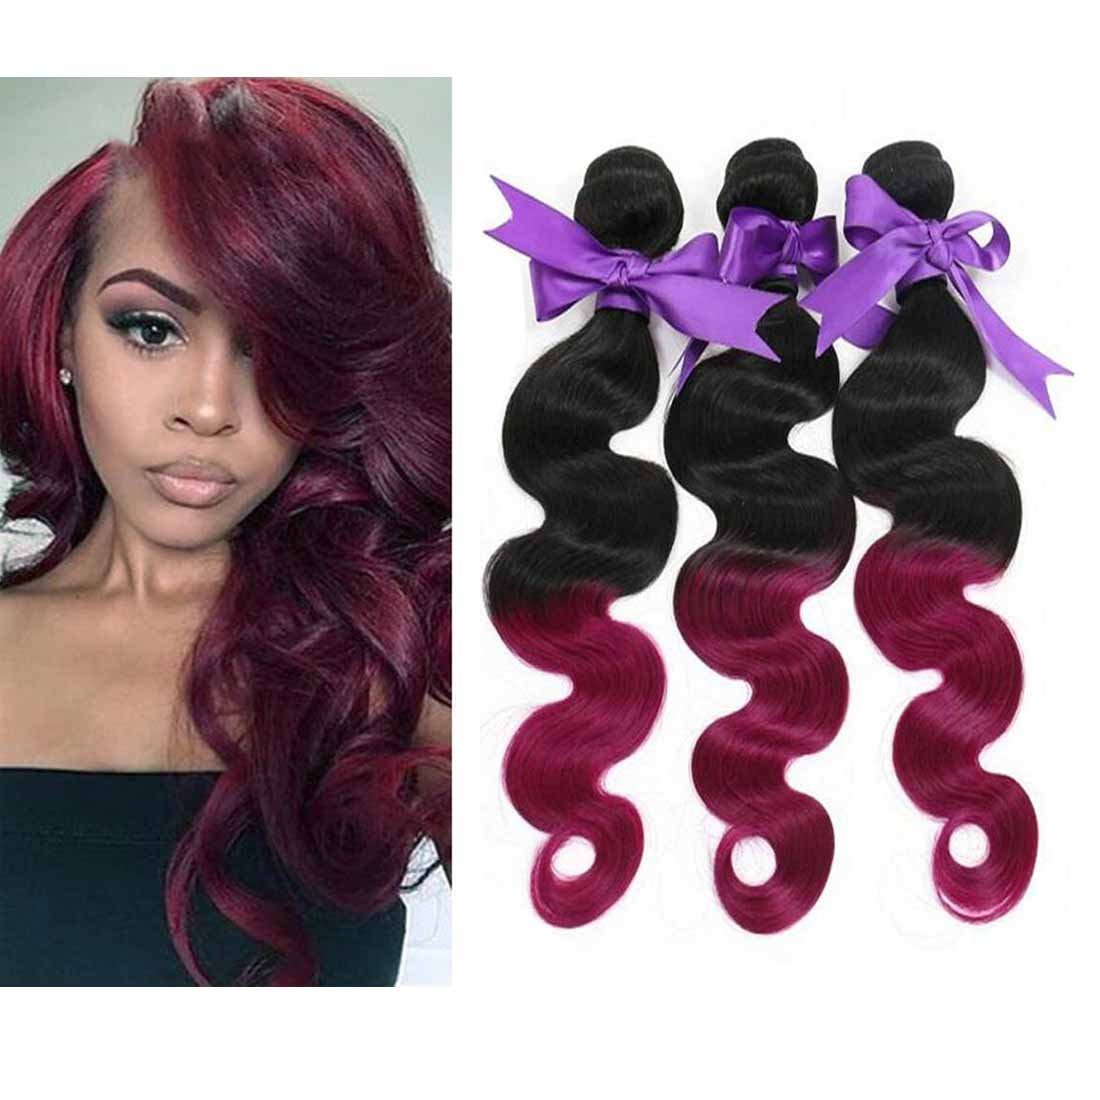 Amazon Angel Hair 5a Ombre Hair Extensions 12 30 Inch Purple